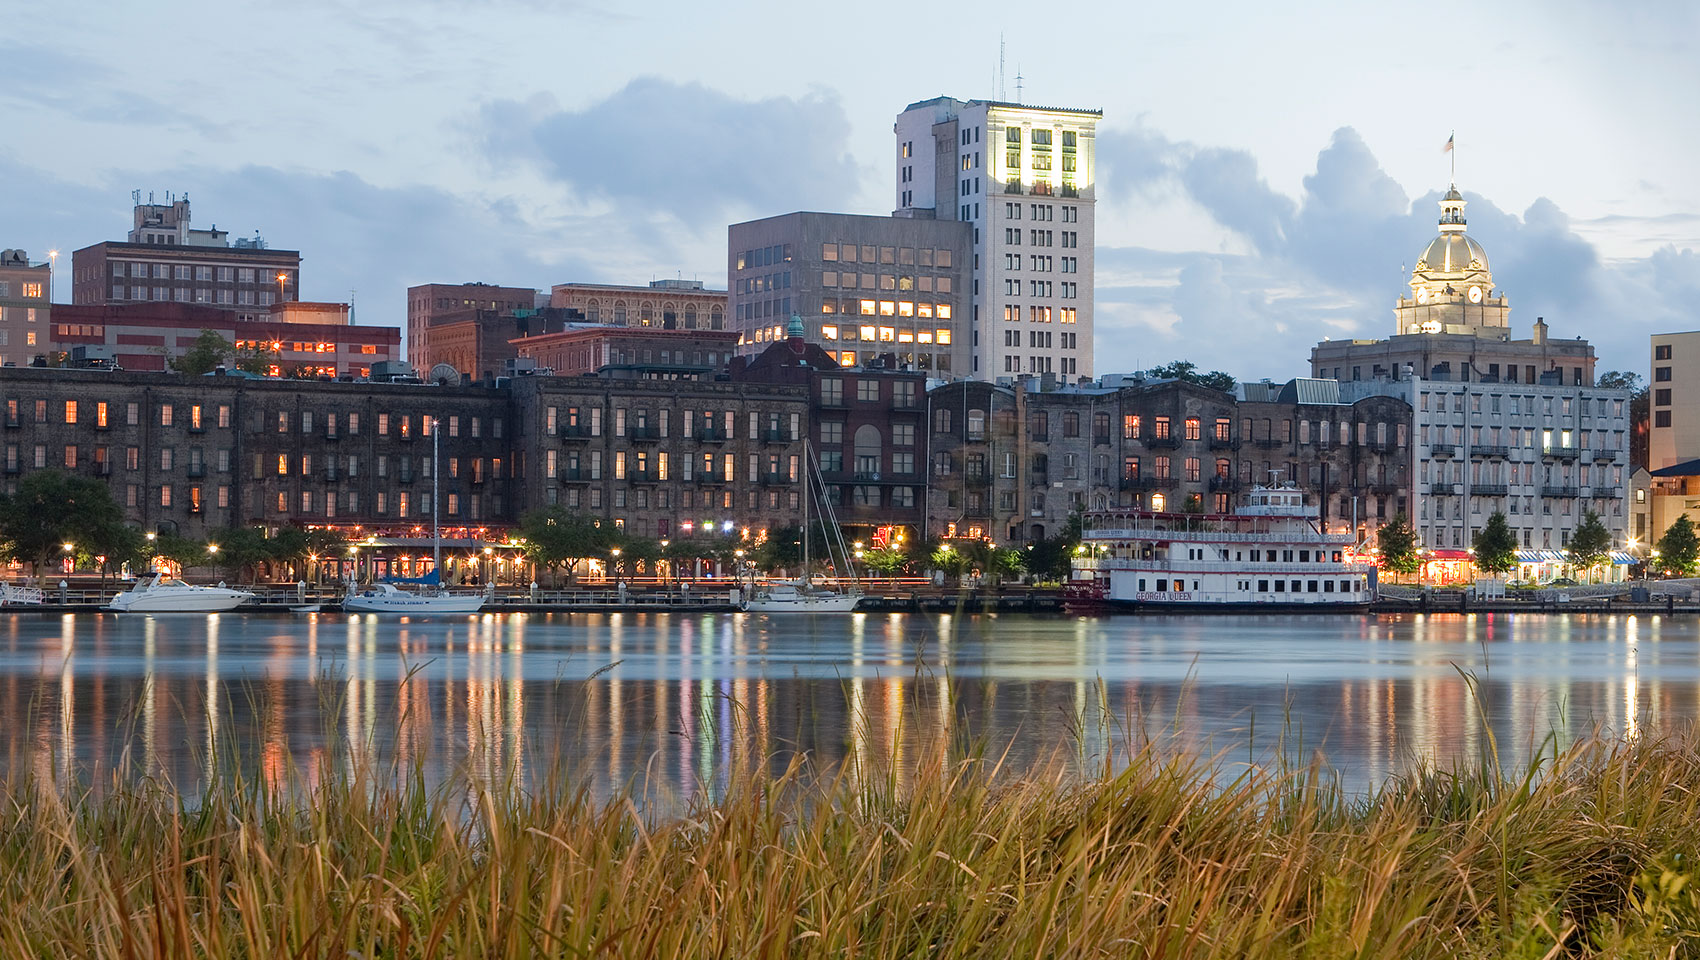 The Brice Hotel Savannah, GA. Image describes the Savannah skyline overlooking Riverwalk.